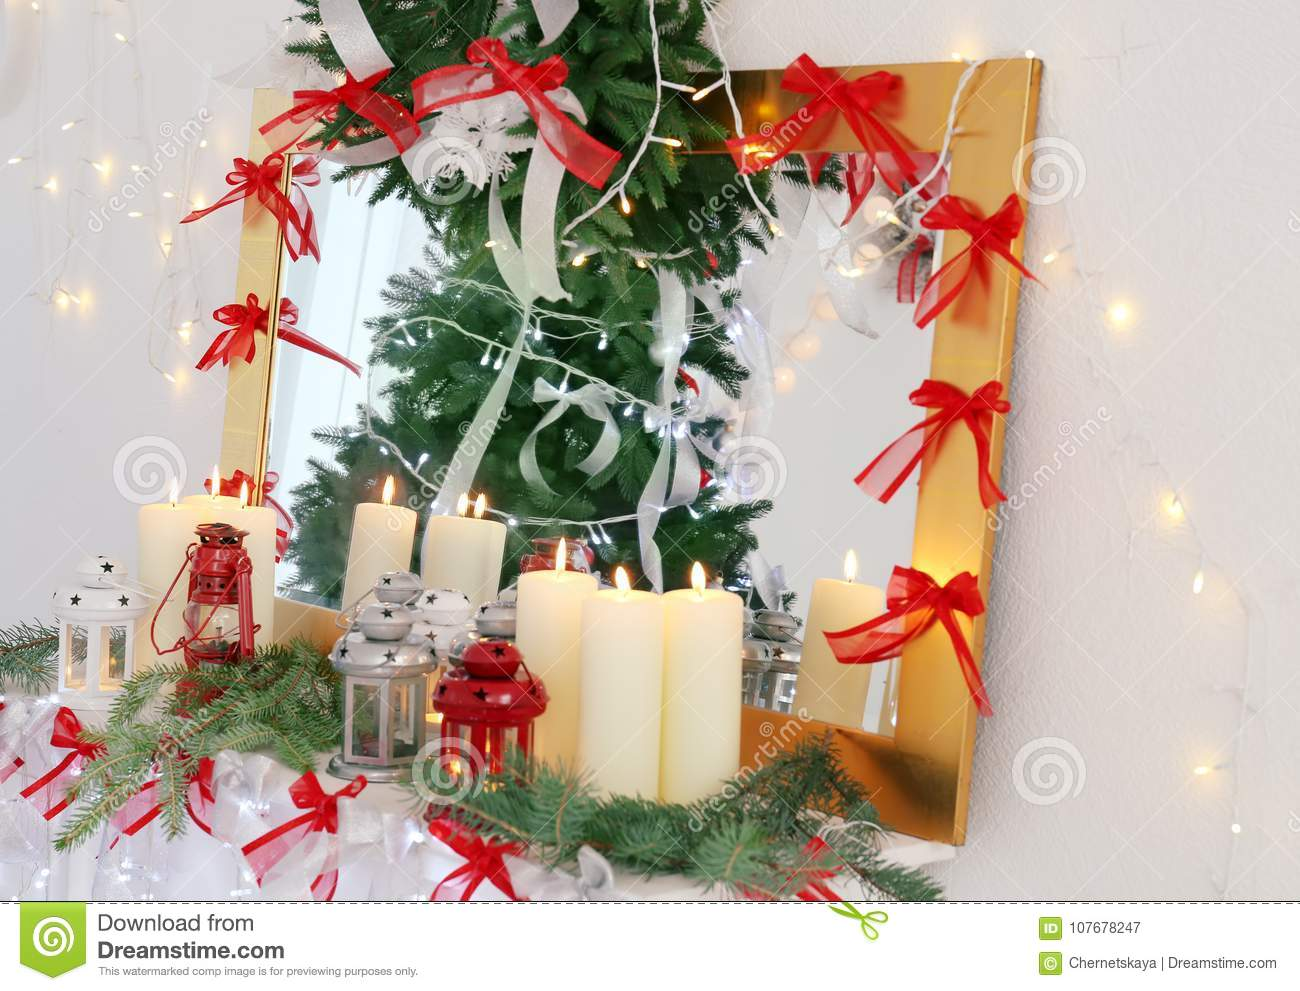 candles and christmas decorations on mantelpiece